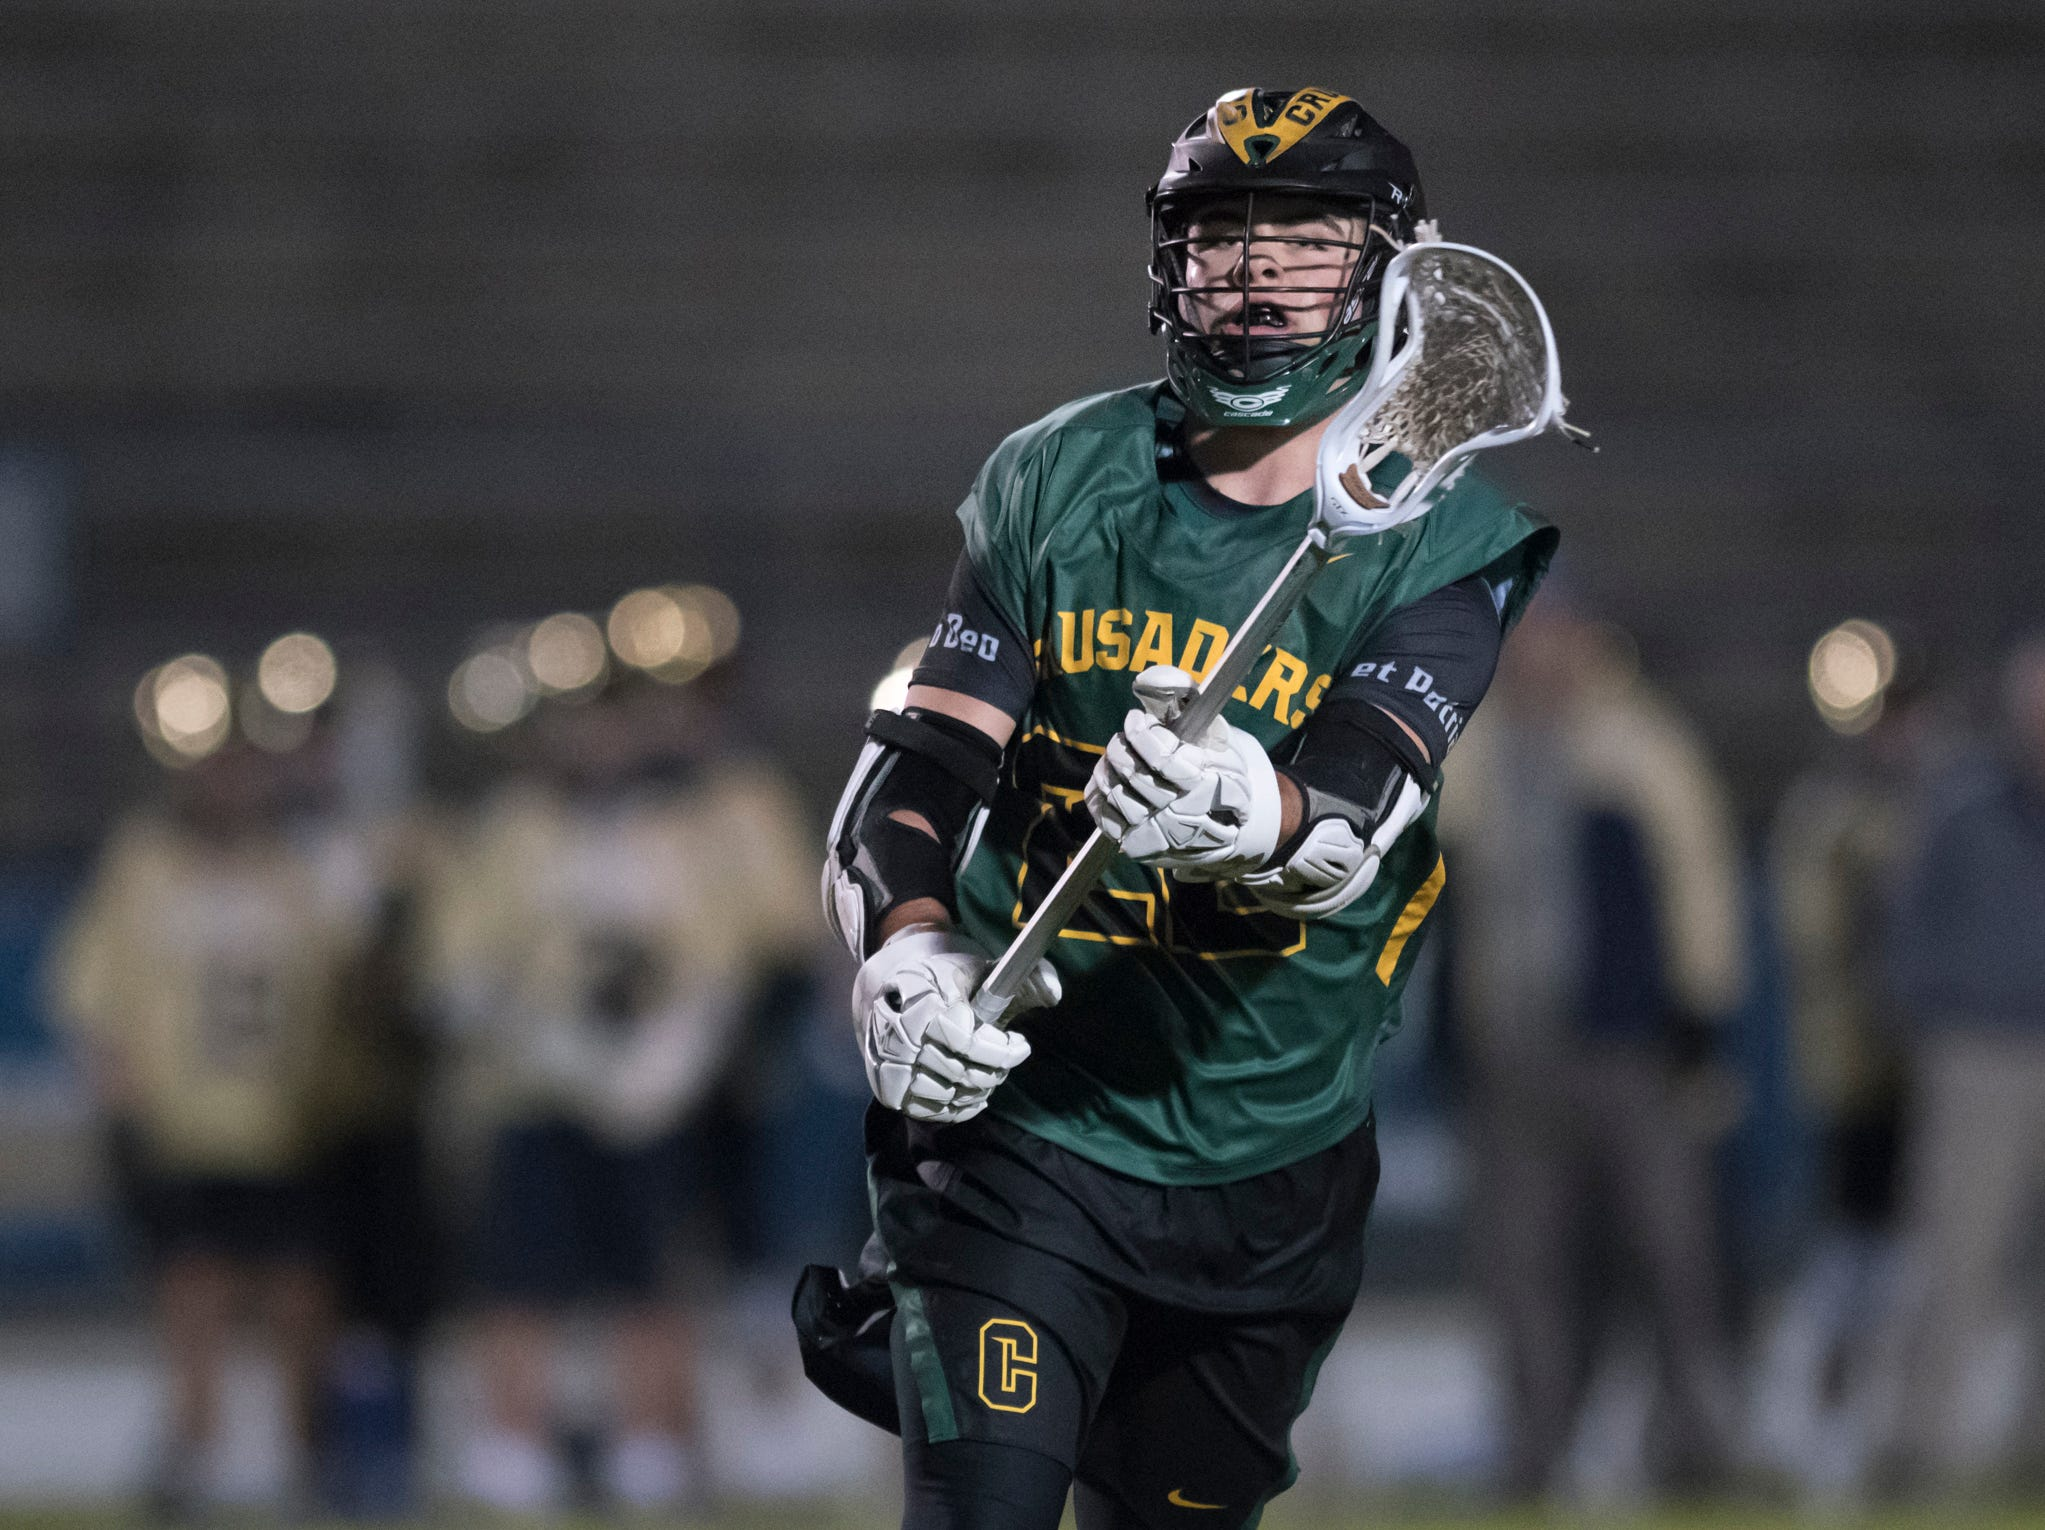 Ryan Campion (22) passes the ball during the Catholic vs. Gulf Breeze boys lacrosse game at Gulf Breeze High School on Wednesday, March 6, 2019.